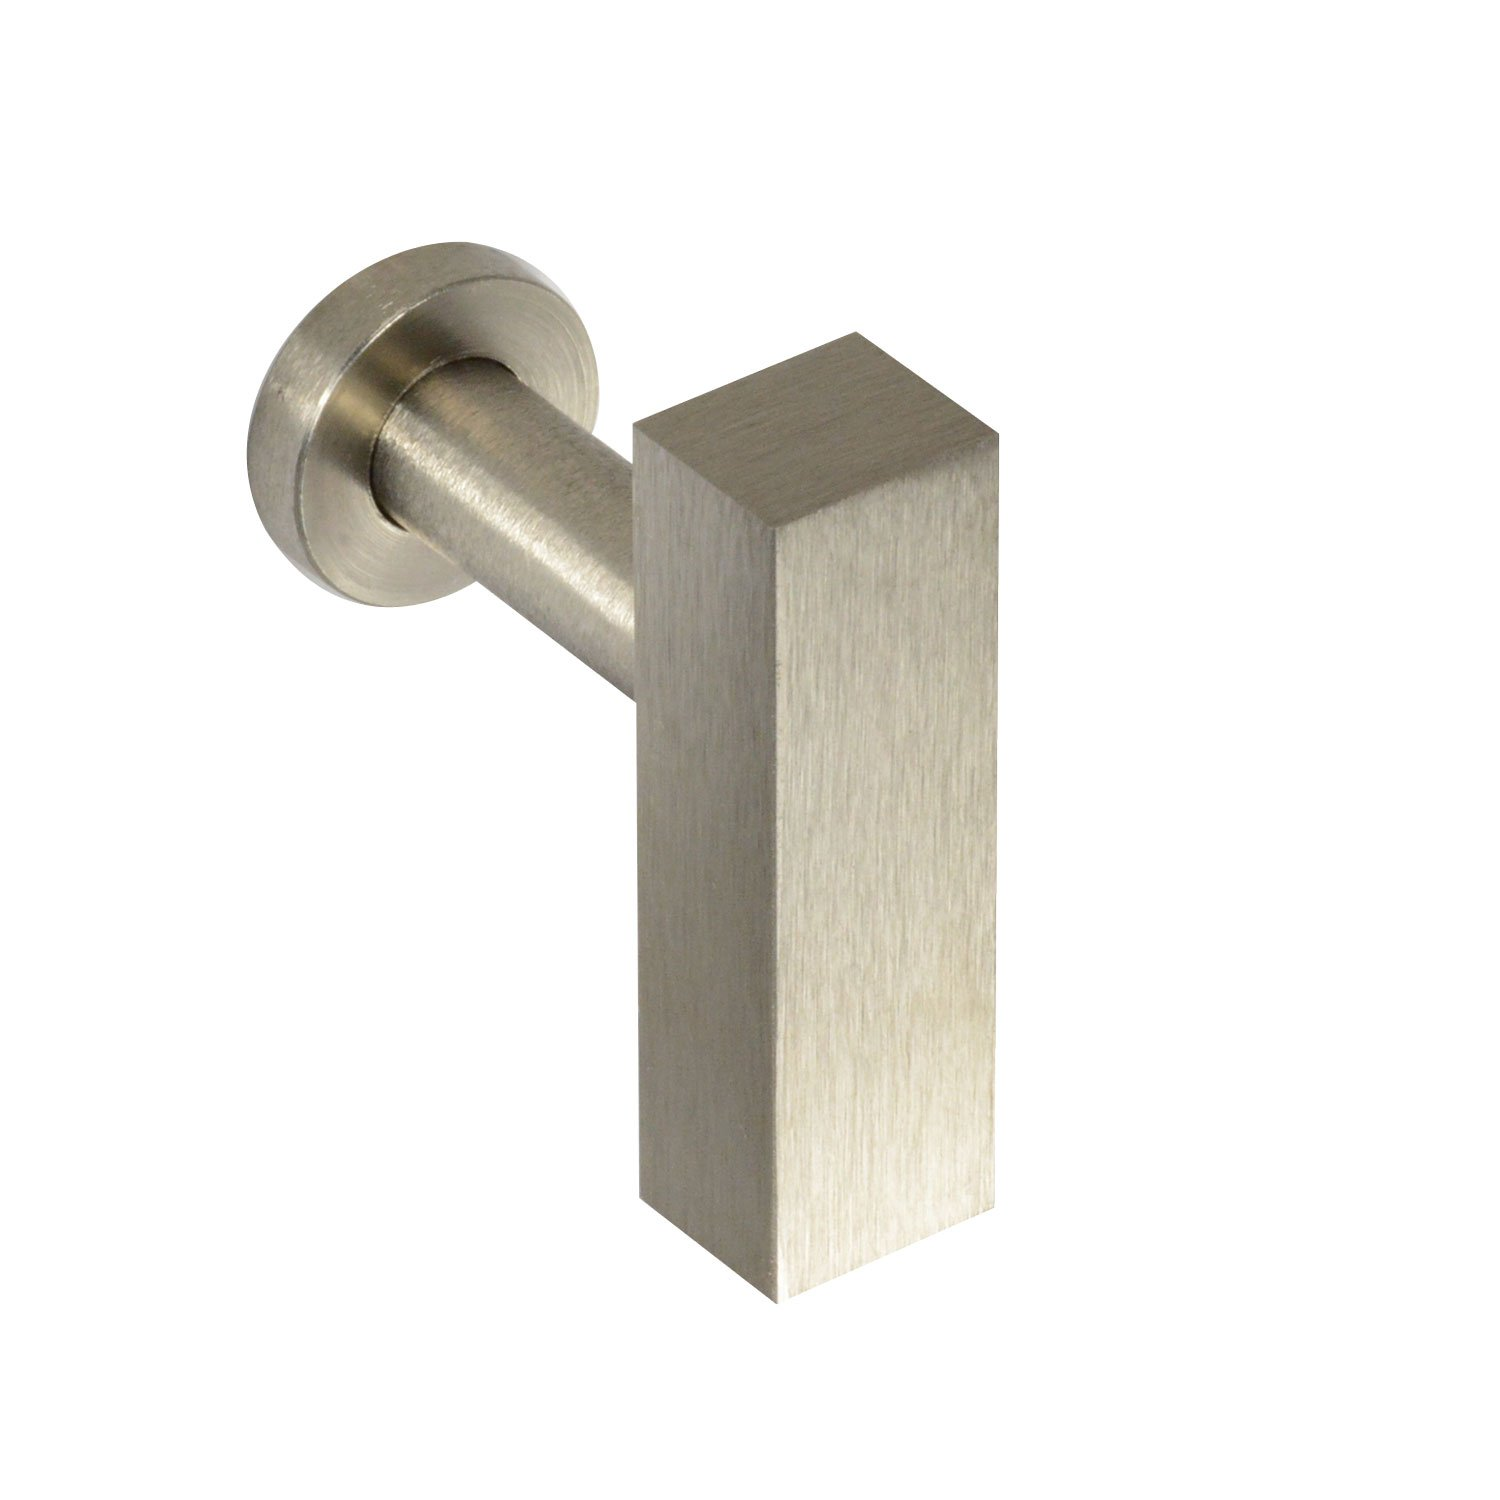 #1600 CKP Brand Linear Aluminum T-Knob, Brushed Nickel - 10 Pack